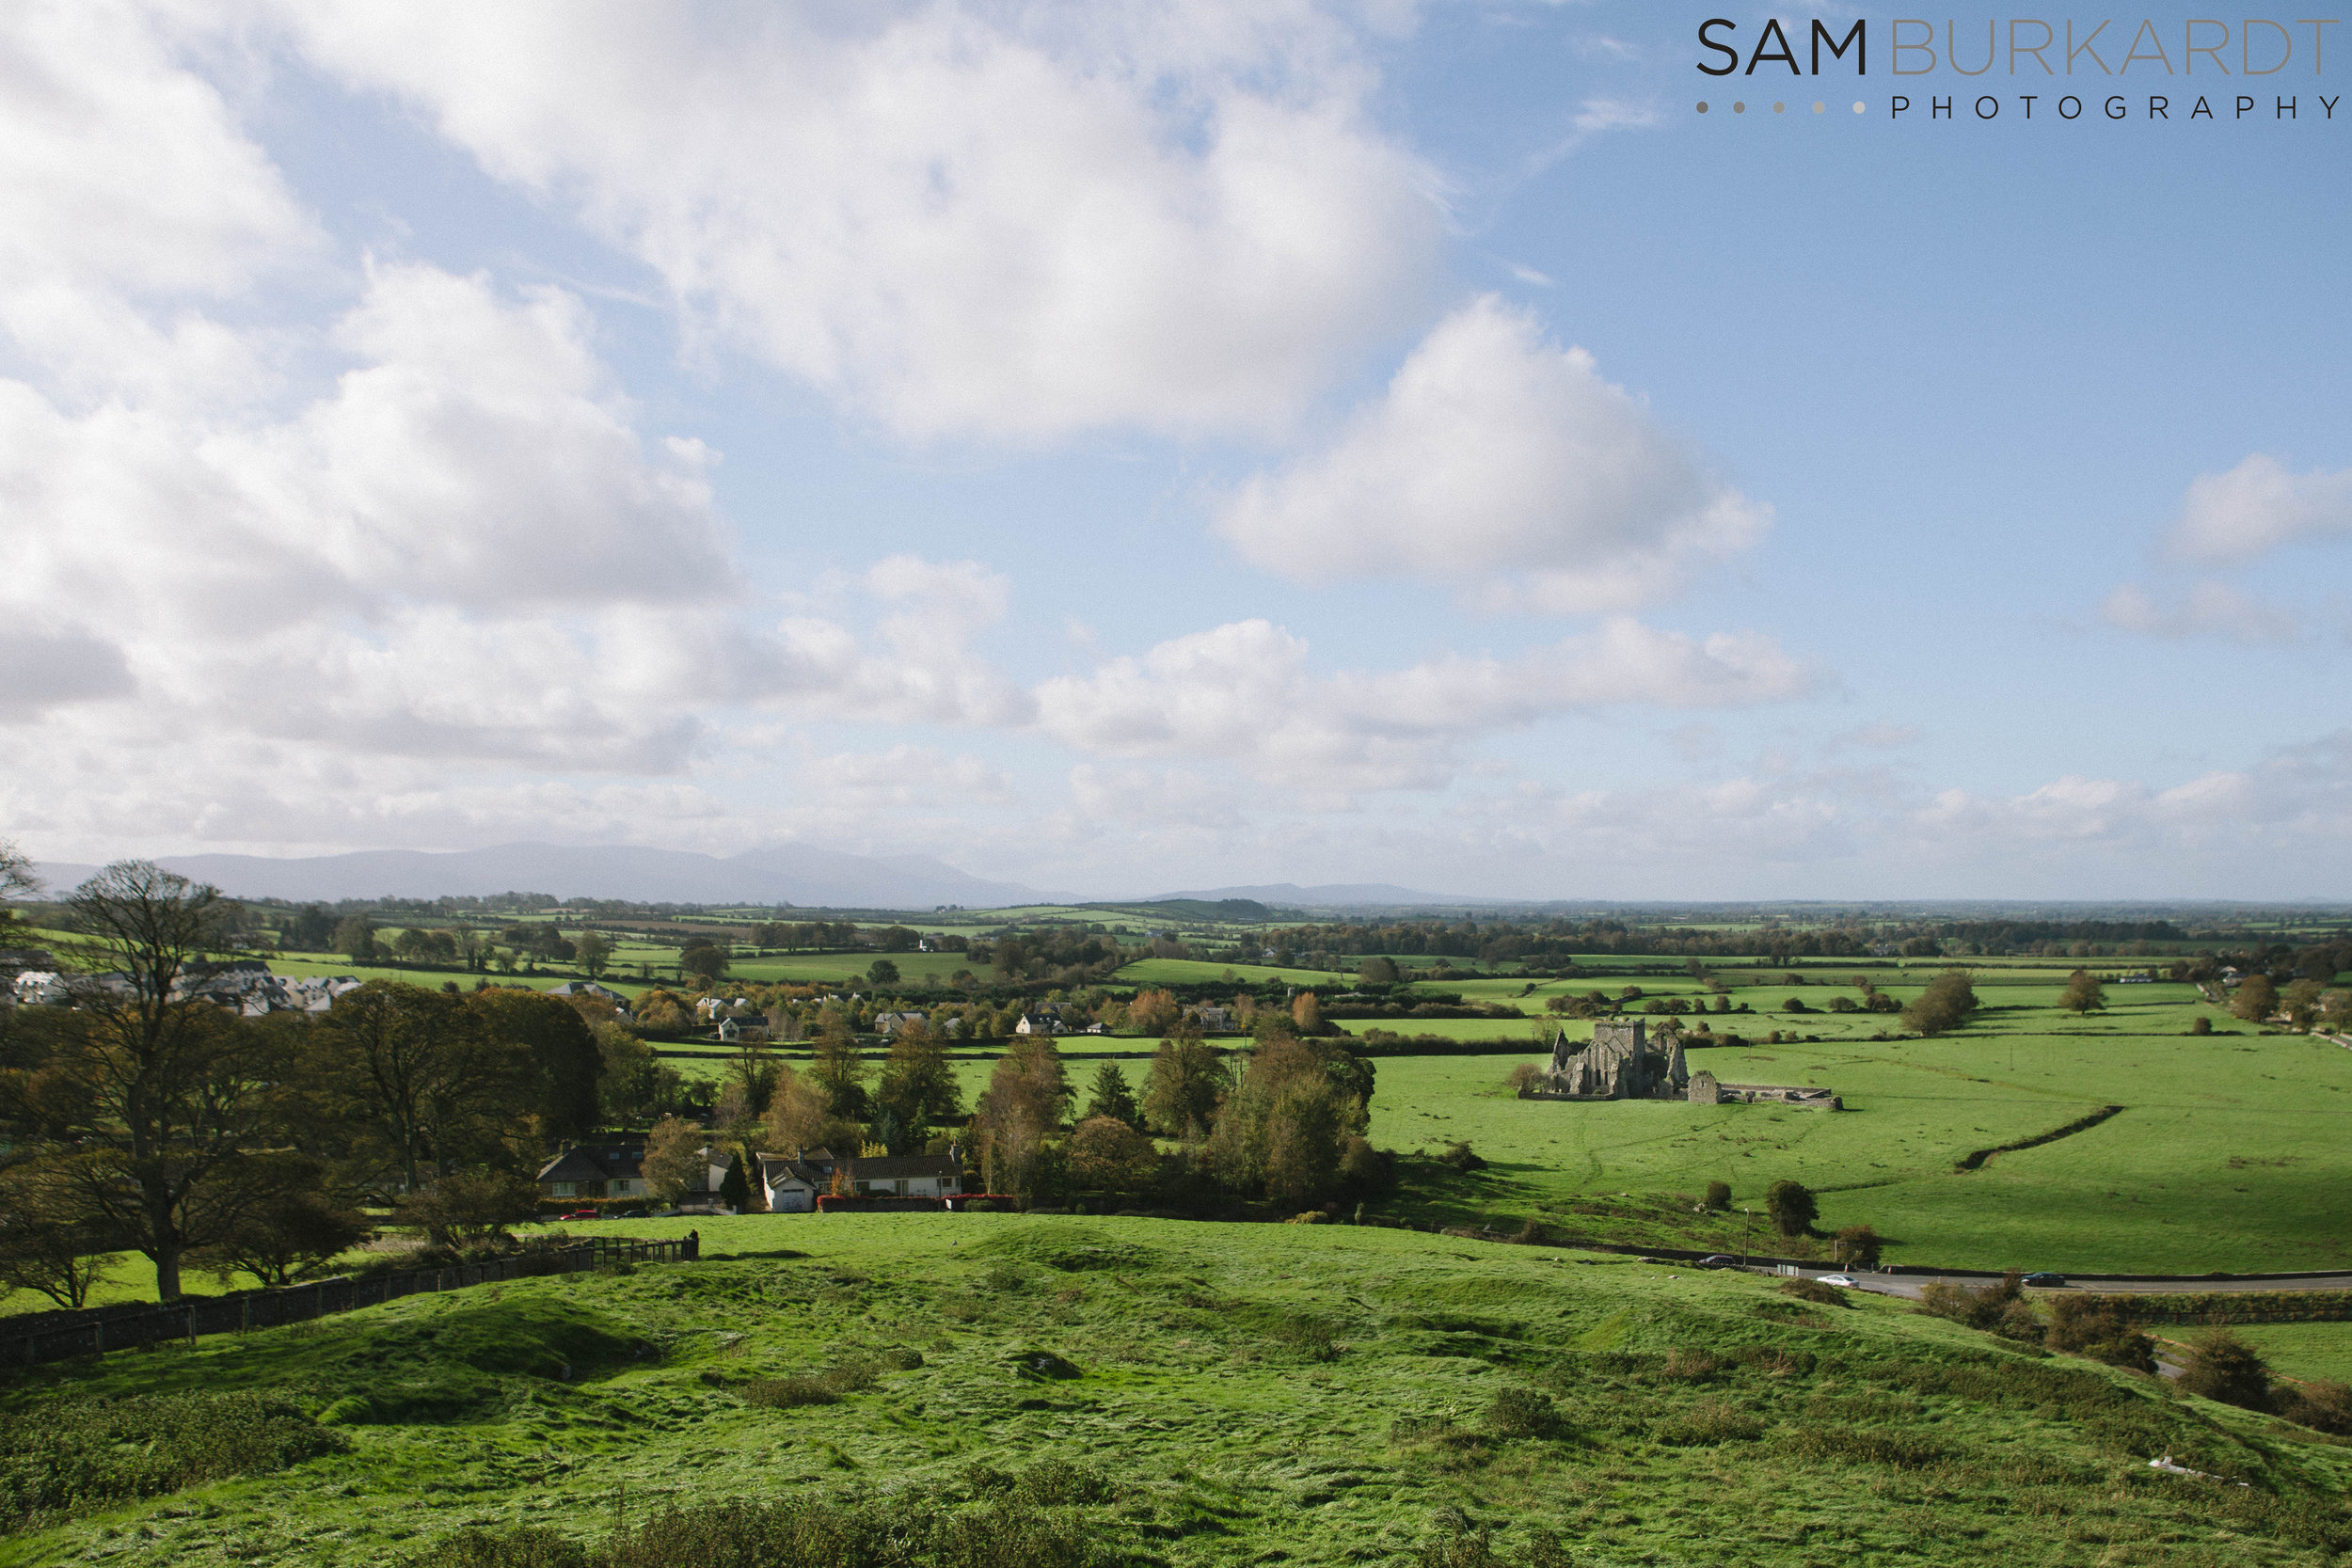 rock_cashel_ireland_scenic_landscape_photography